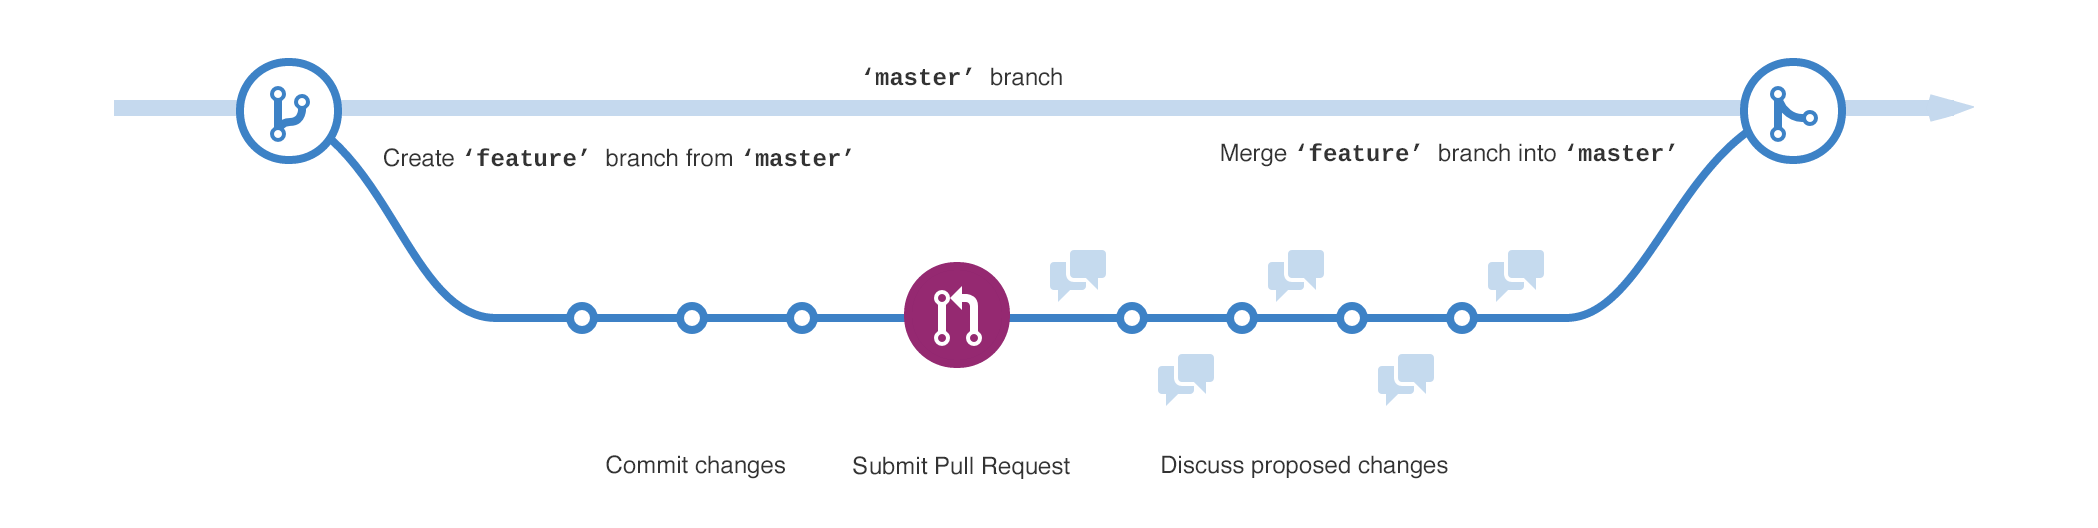 How to set up an efficient development workflow with Git and